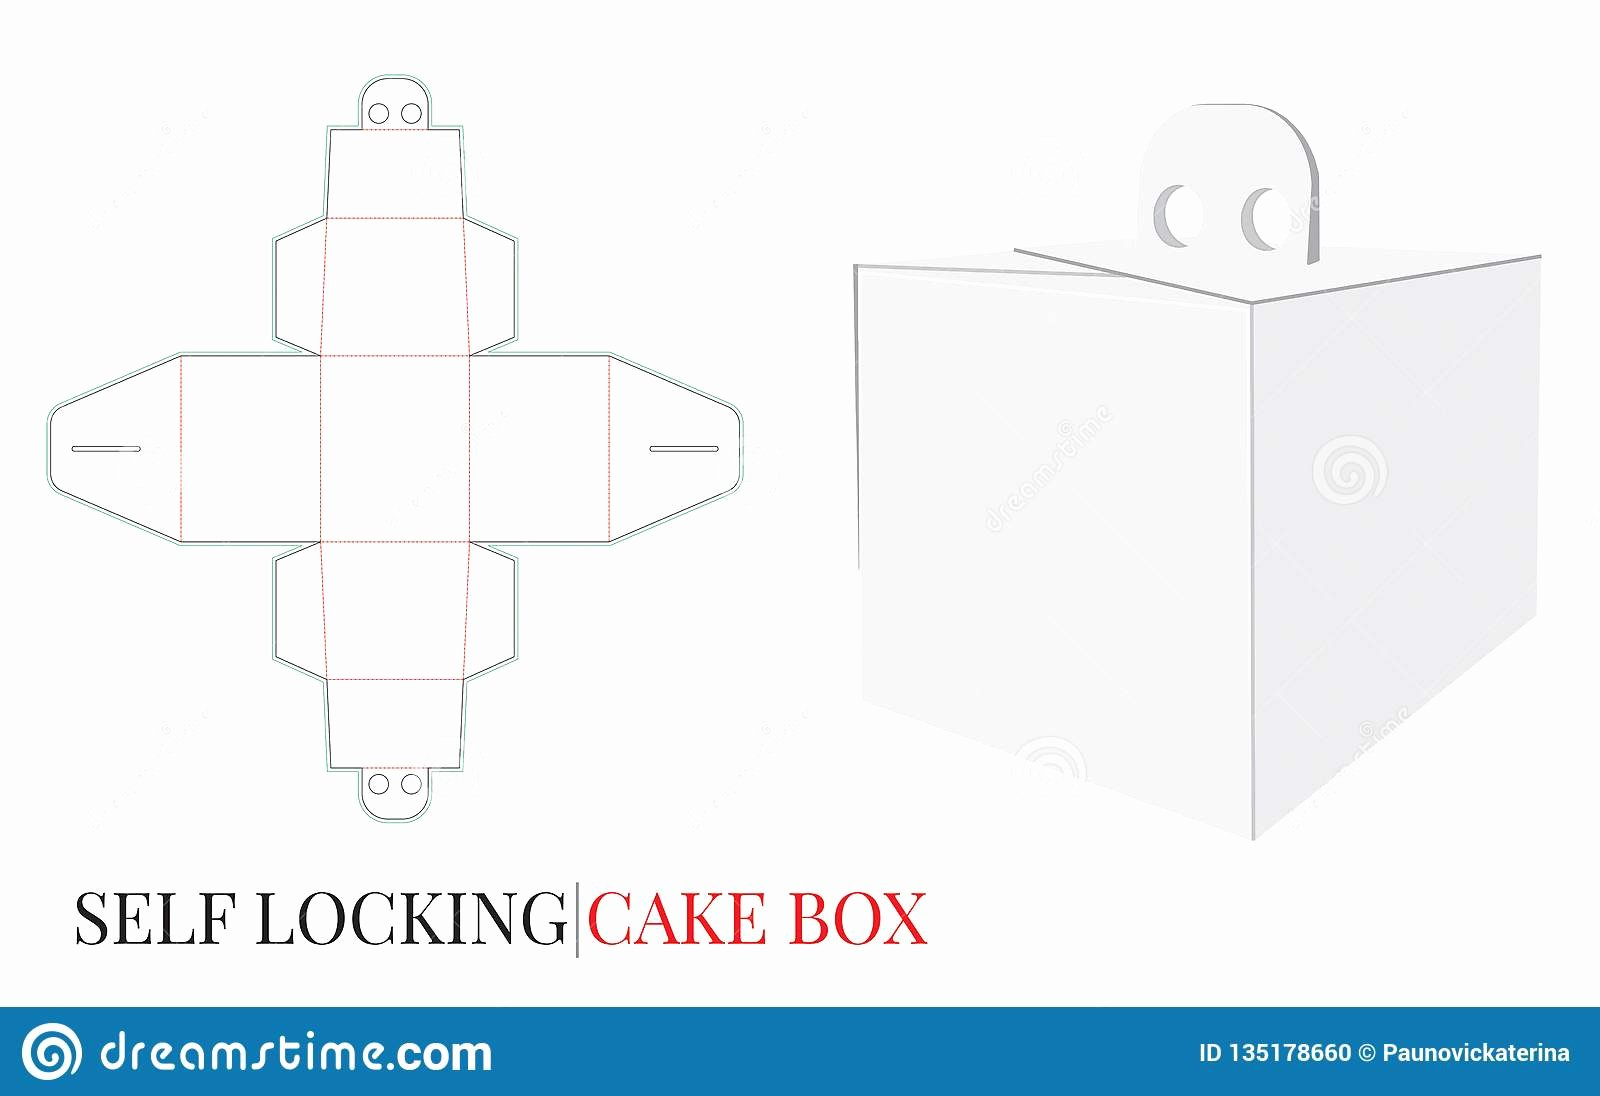 Box Die Cut Template Best Of Cake Box with Handle Template with Die Cut Lines Delivery Cake Box Self Locking Box Stock